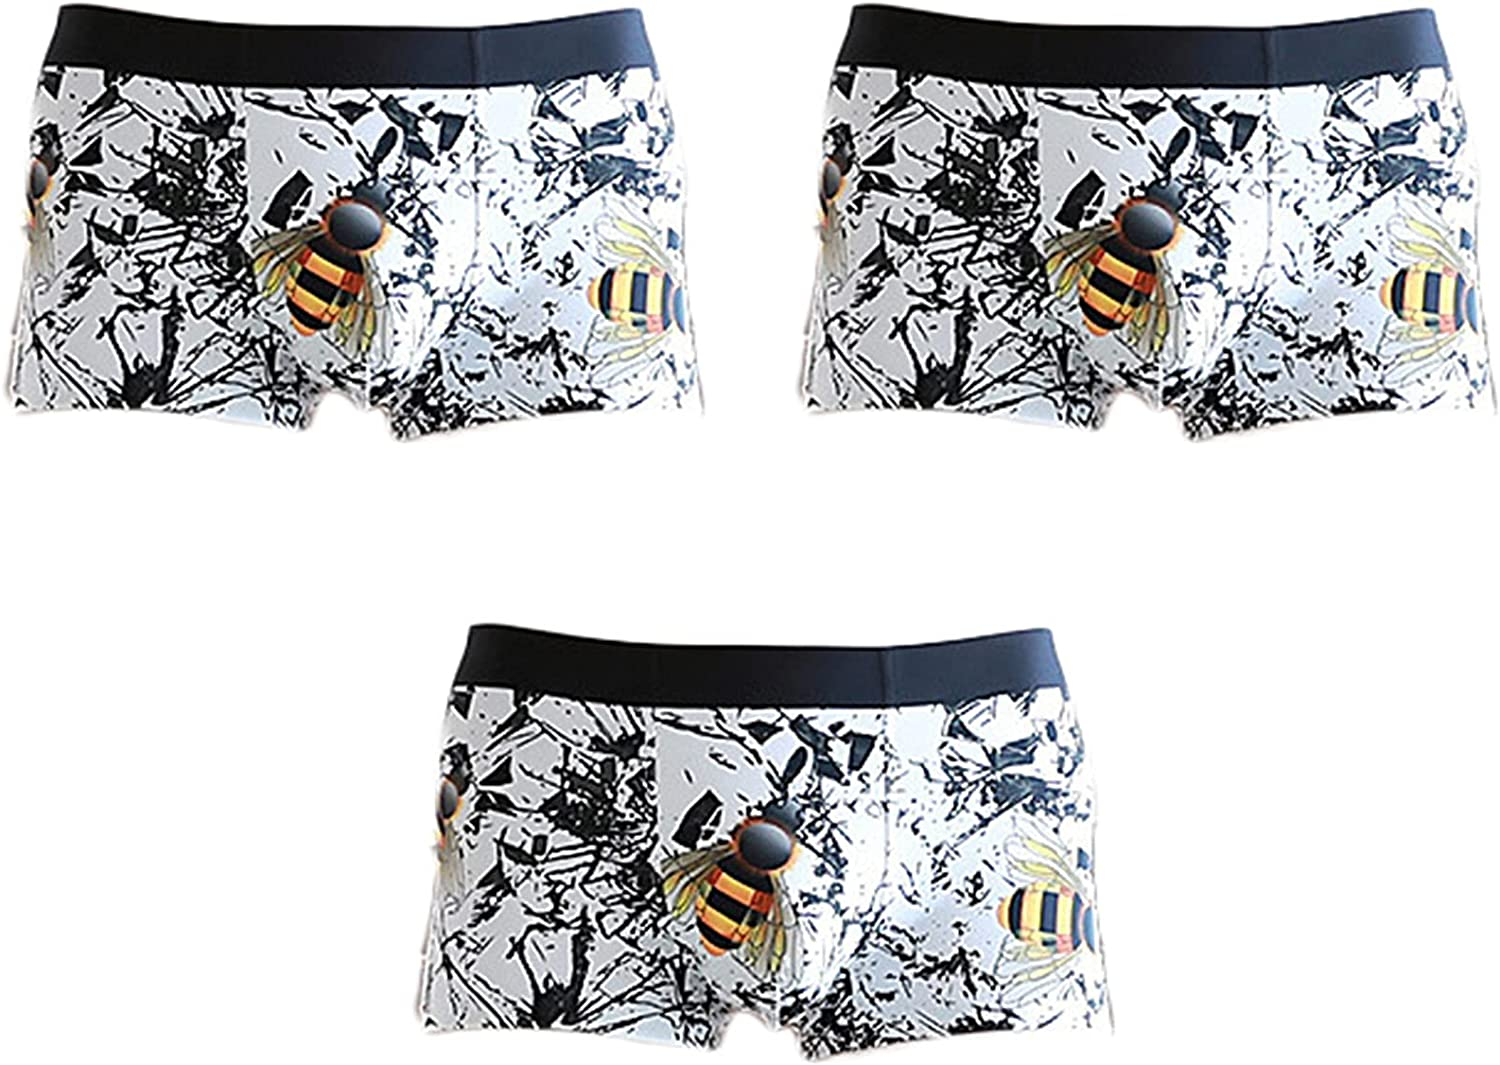 Andongnywell Men printed ice silk Boxer Briefs Underwear for Man Stylish Comfortable Boxer Quick-drying Cool 3 Pack